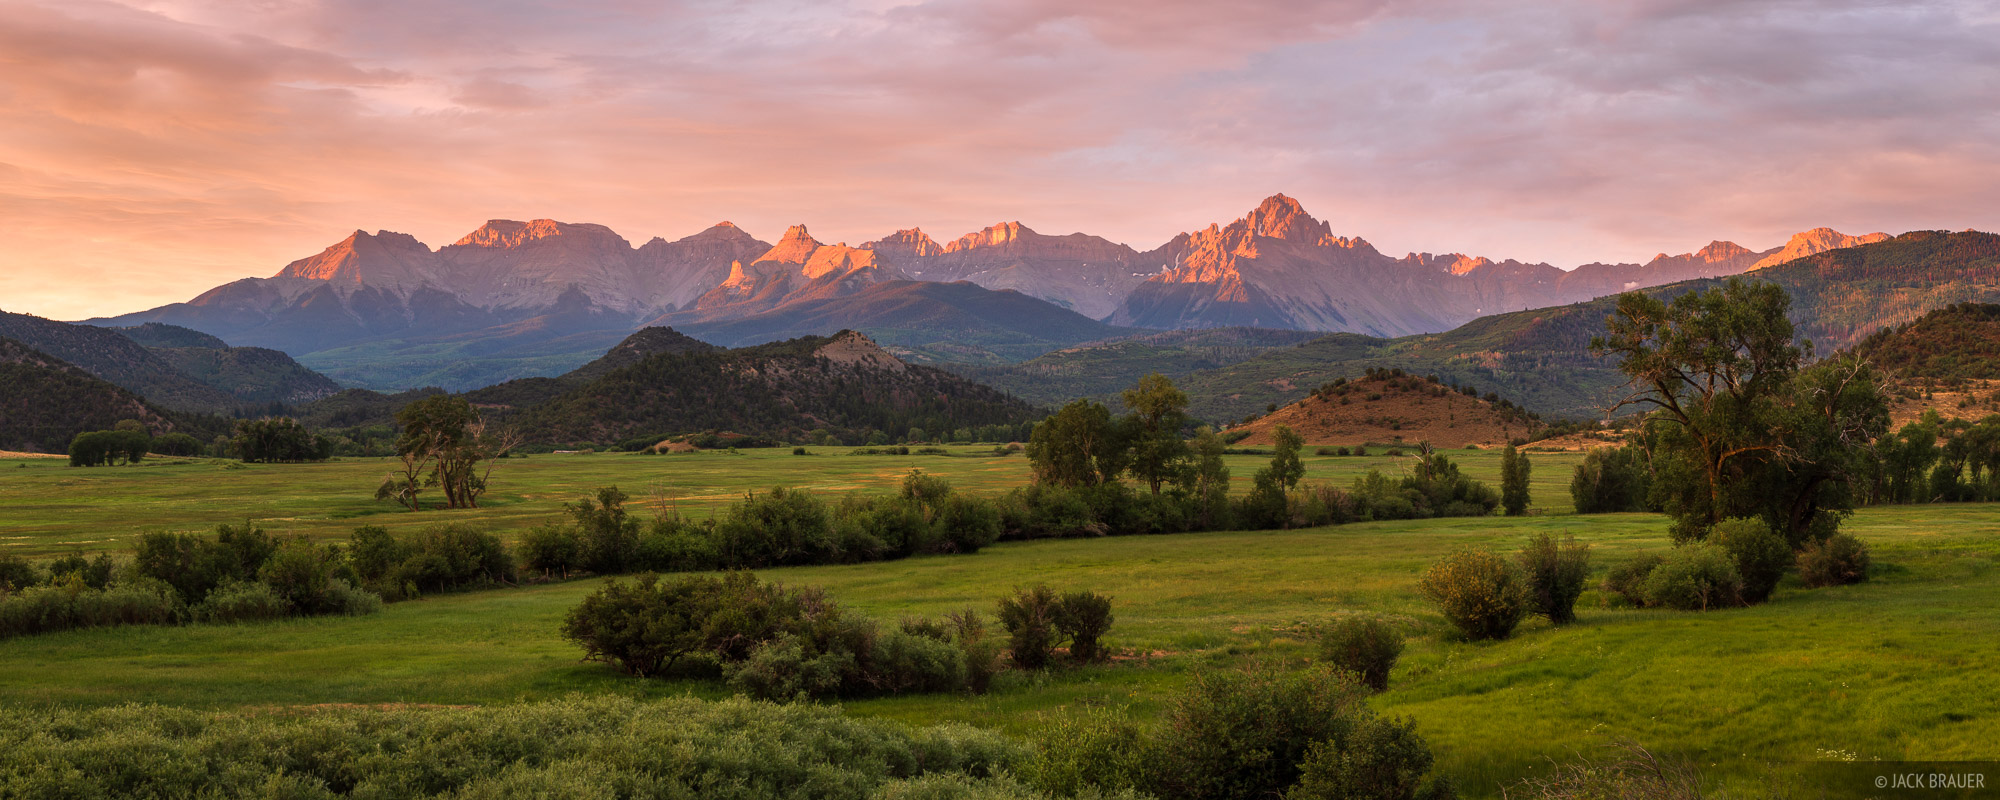 Colorado, Ridgway, San Juan Mountains, Sneffels Range, sunrise, panorama